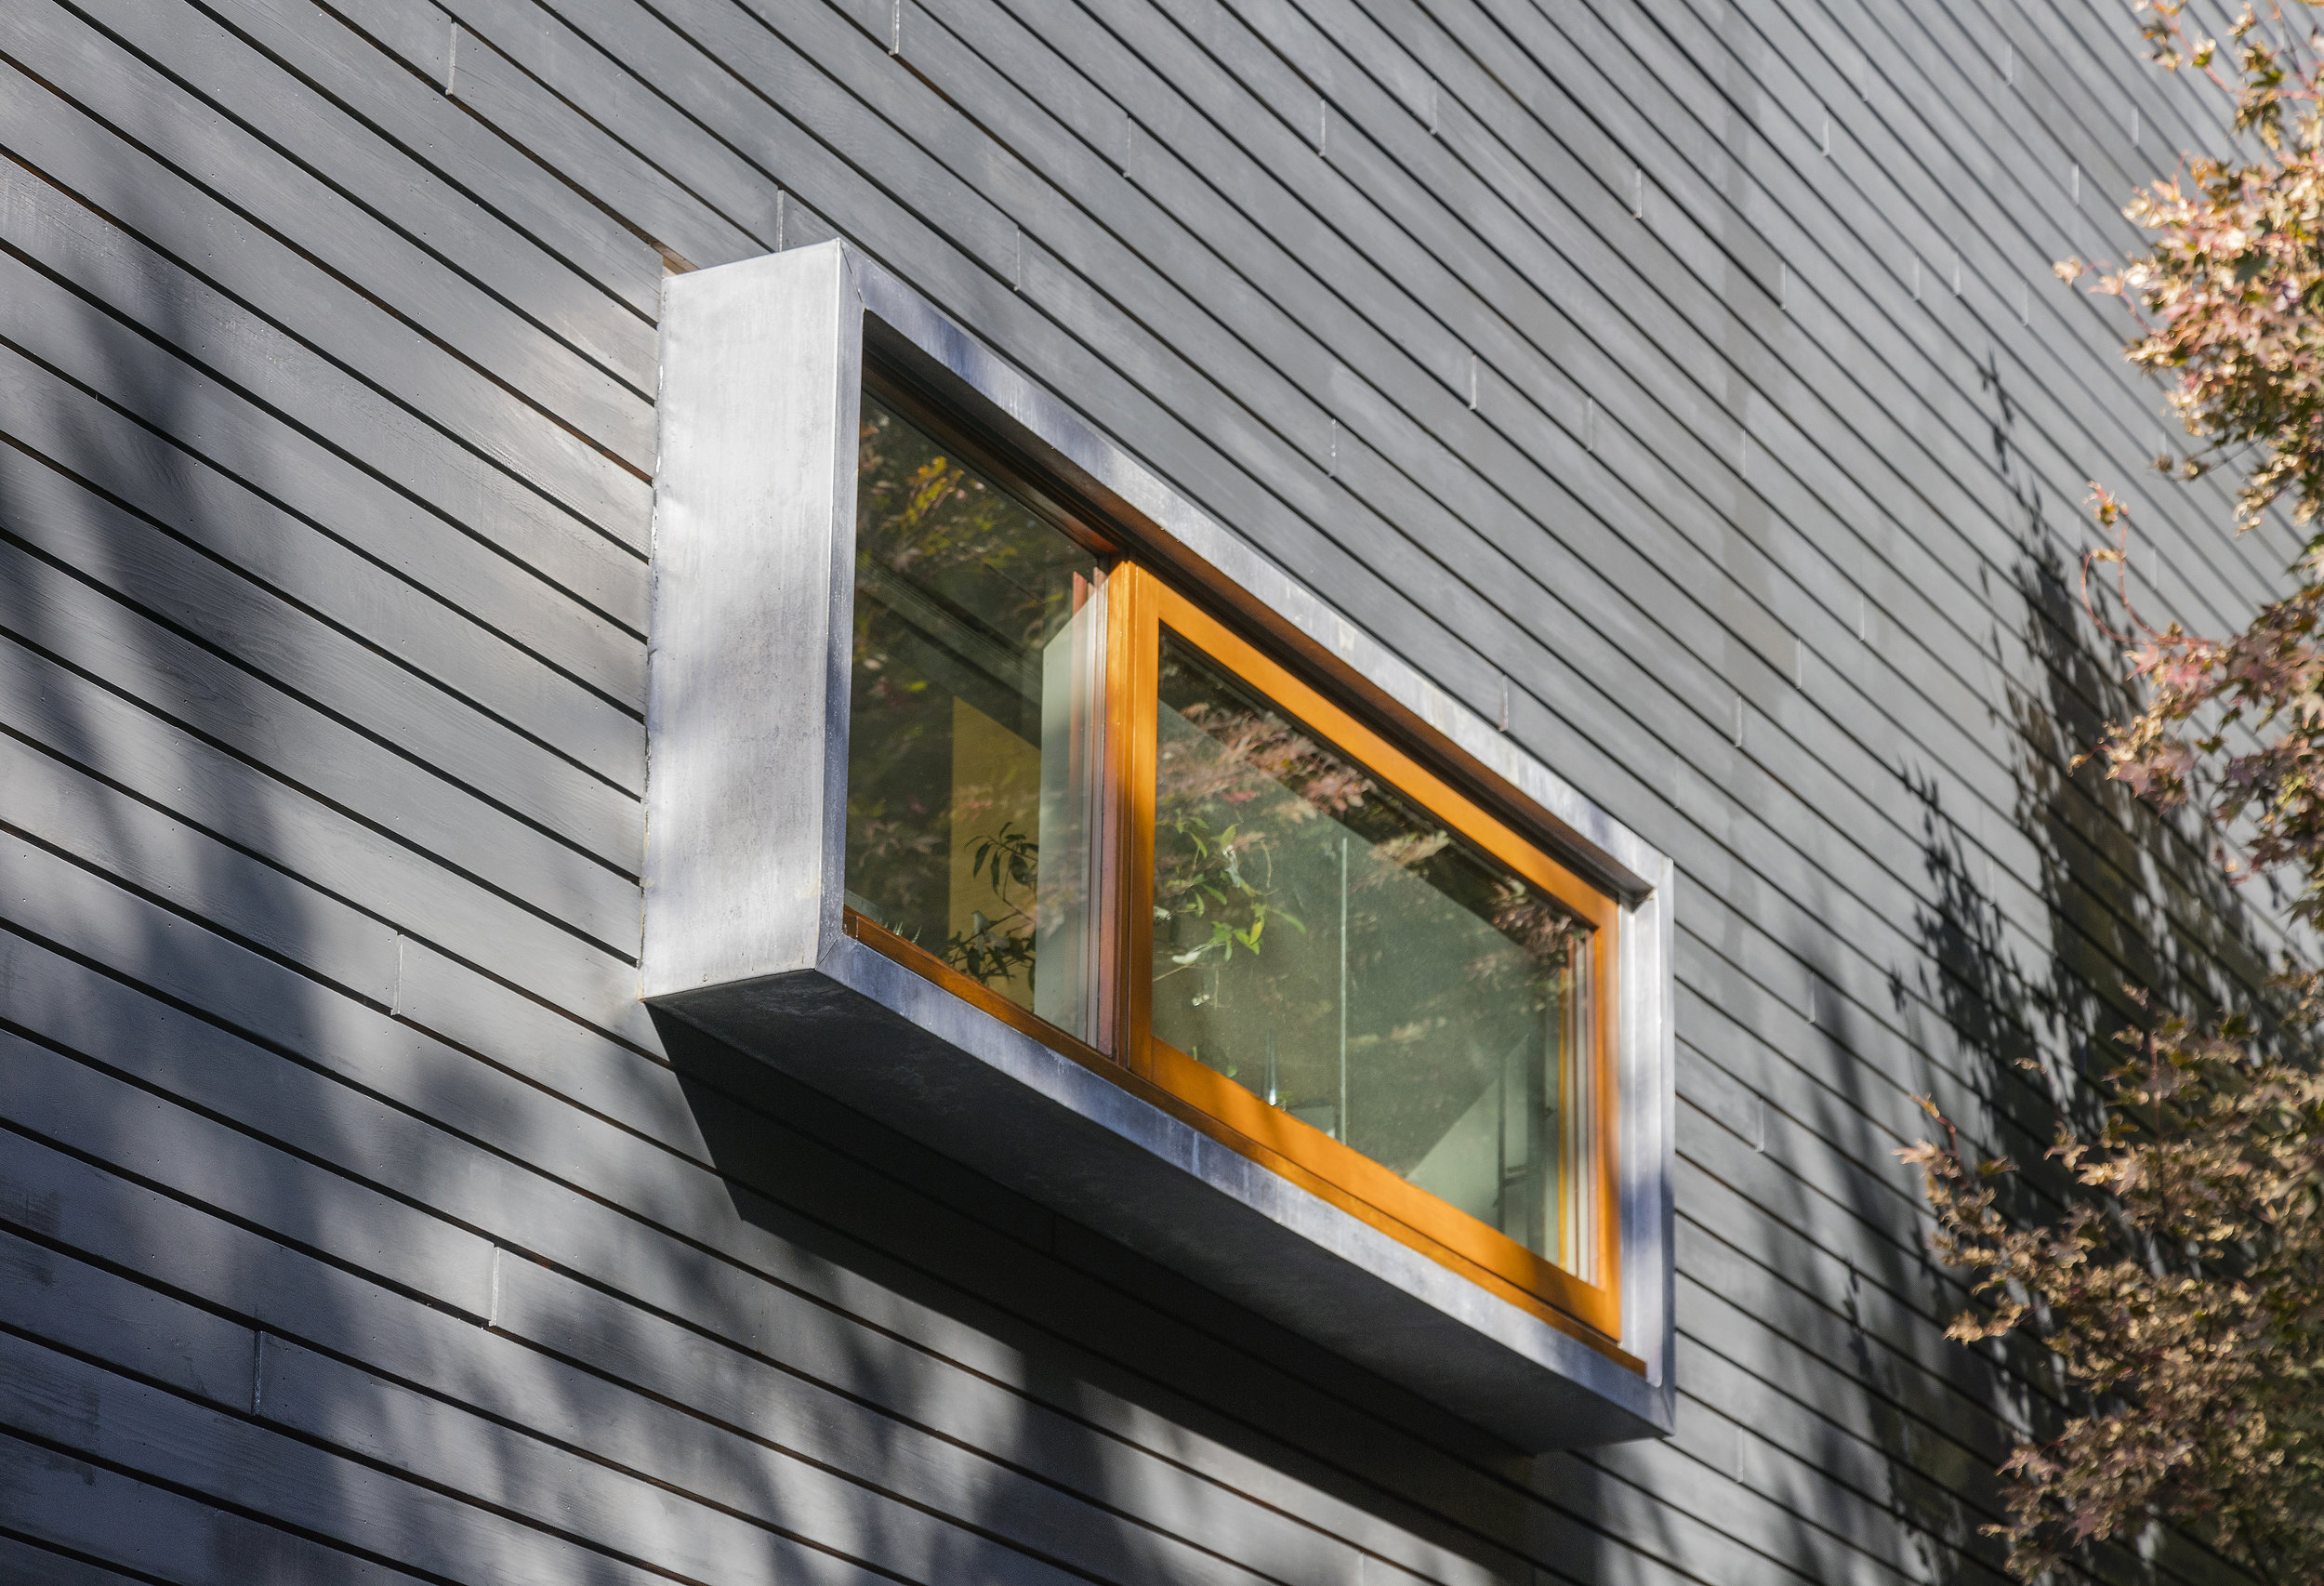 extruded sliding window modern architecture design in fairfield county ct